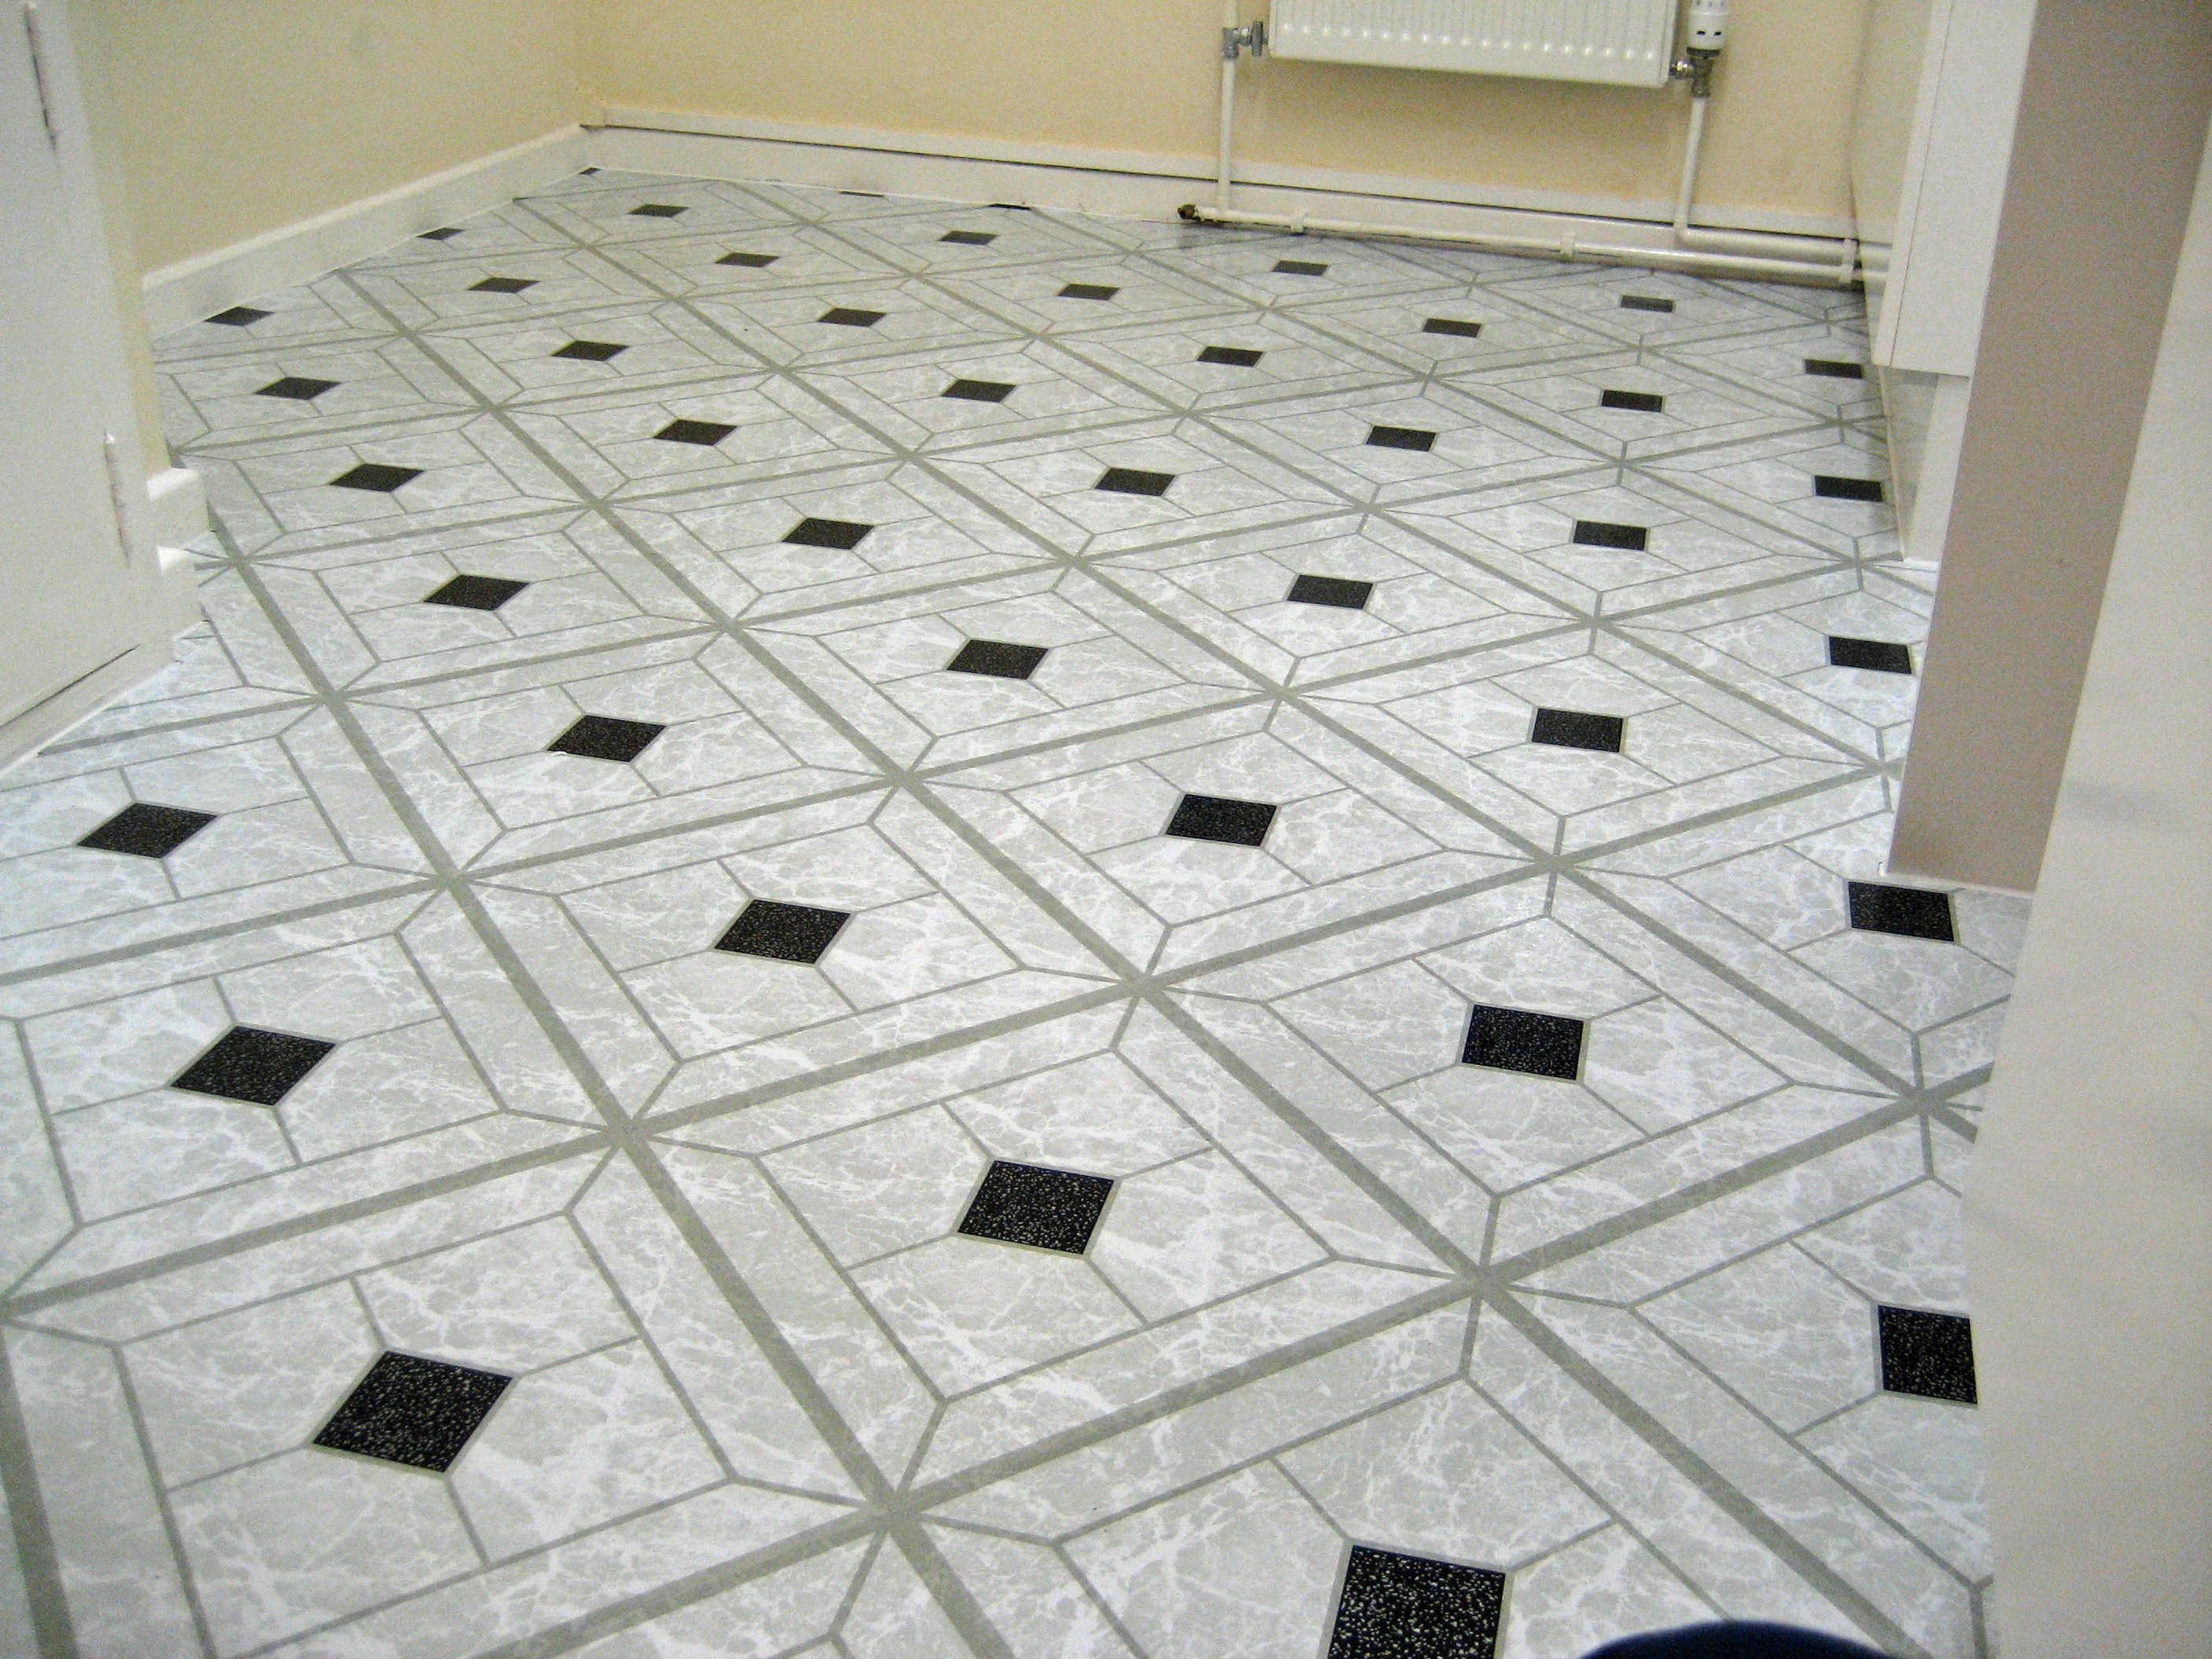 50 VINYL FLOOR TILES: Black/White Diamond SELF-STICK (Peel & Stick ...